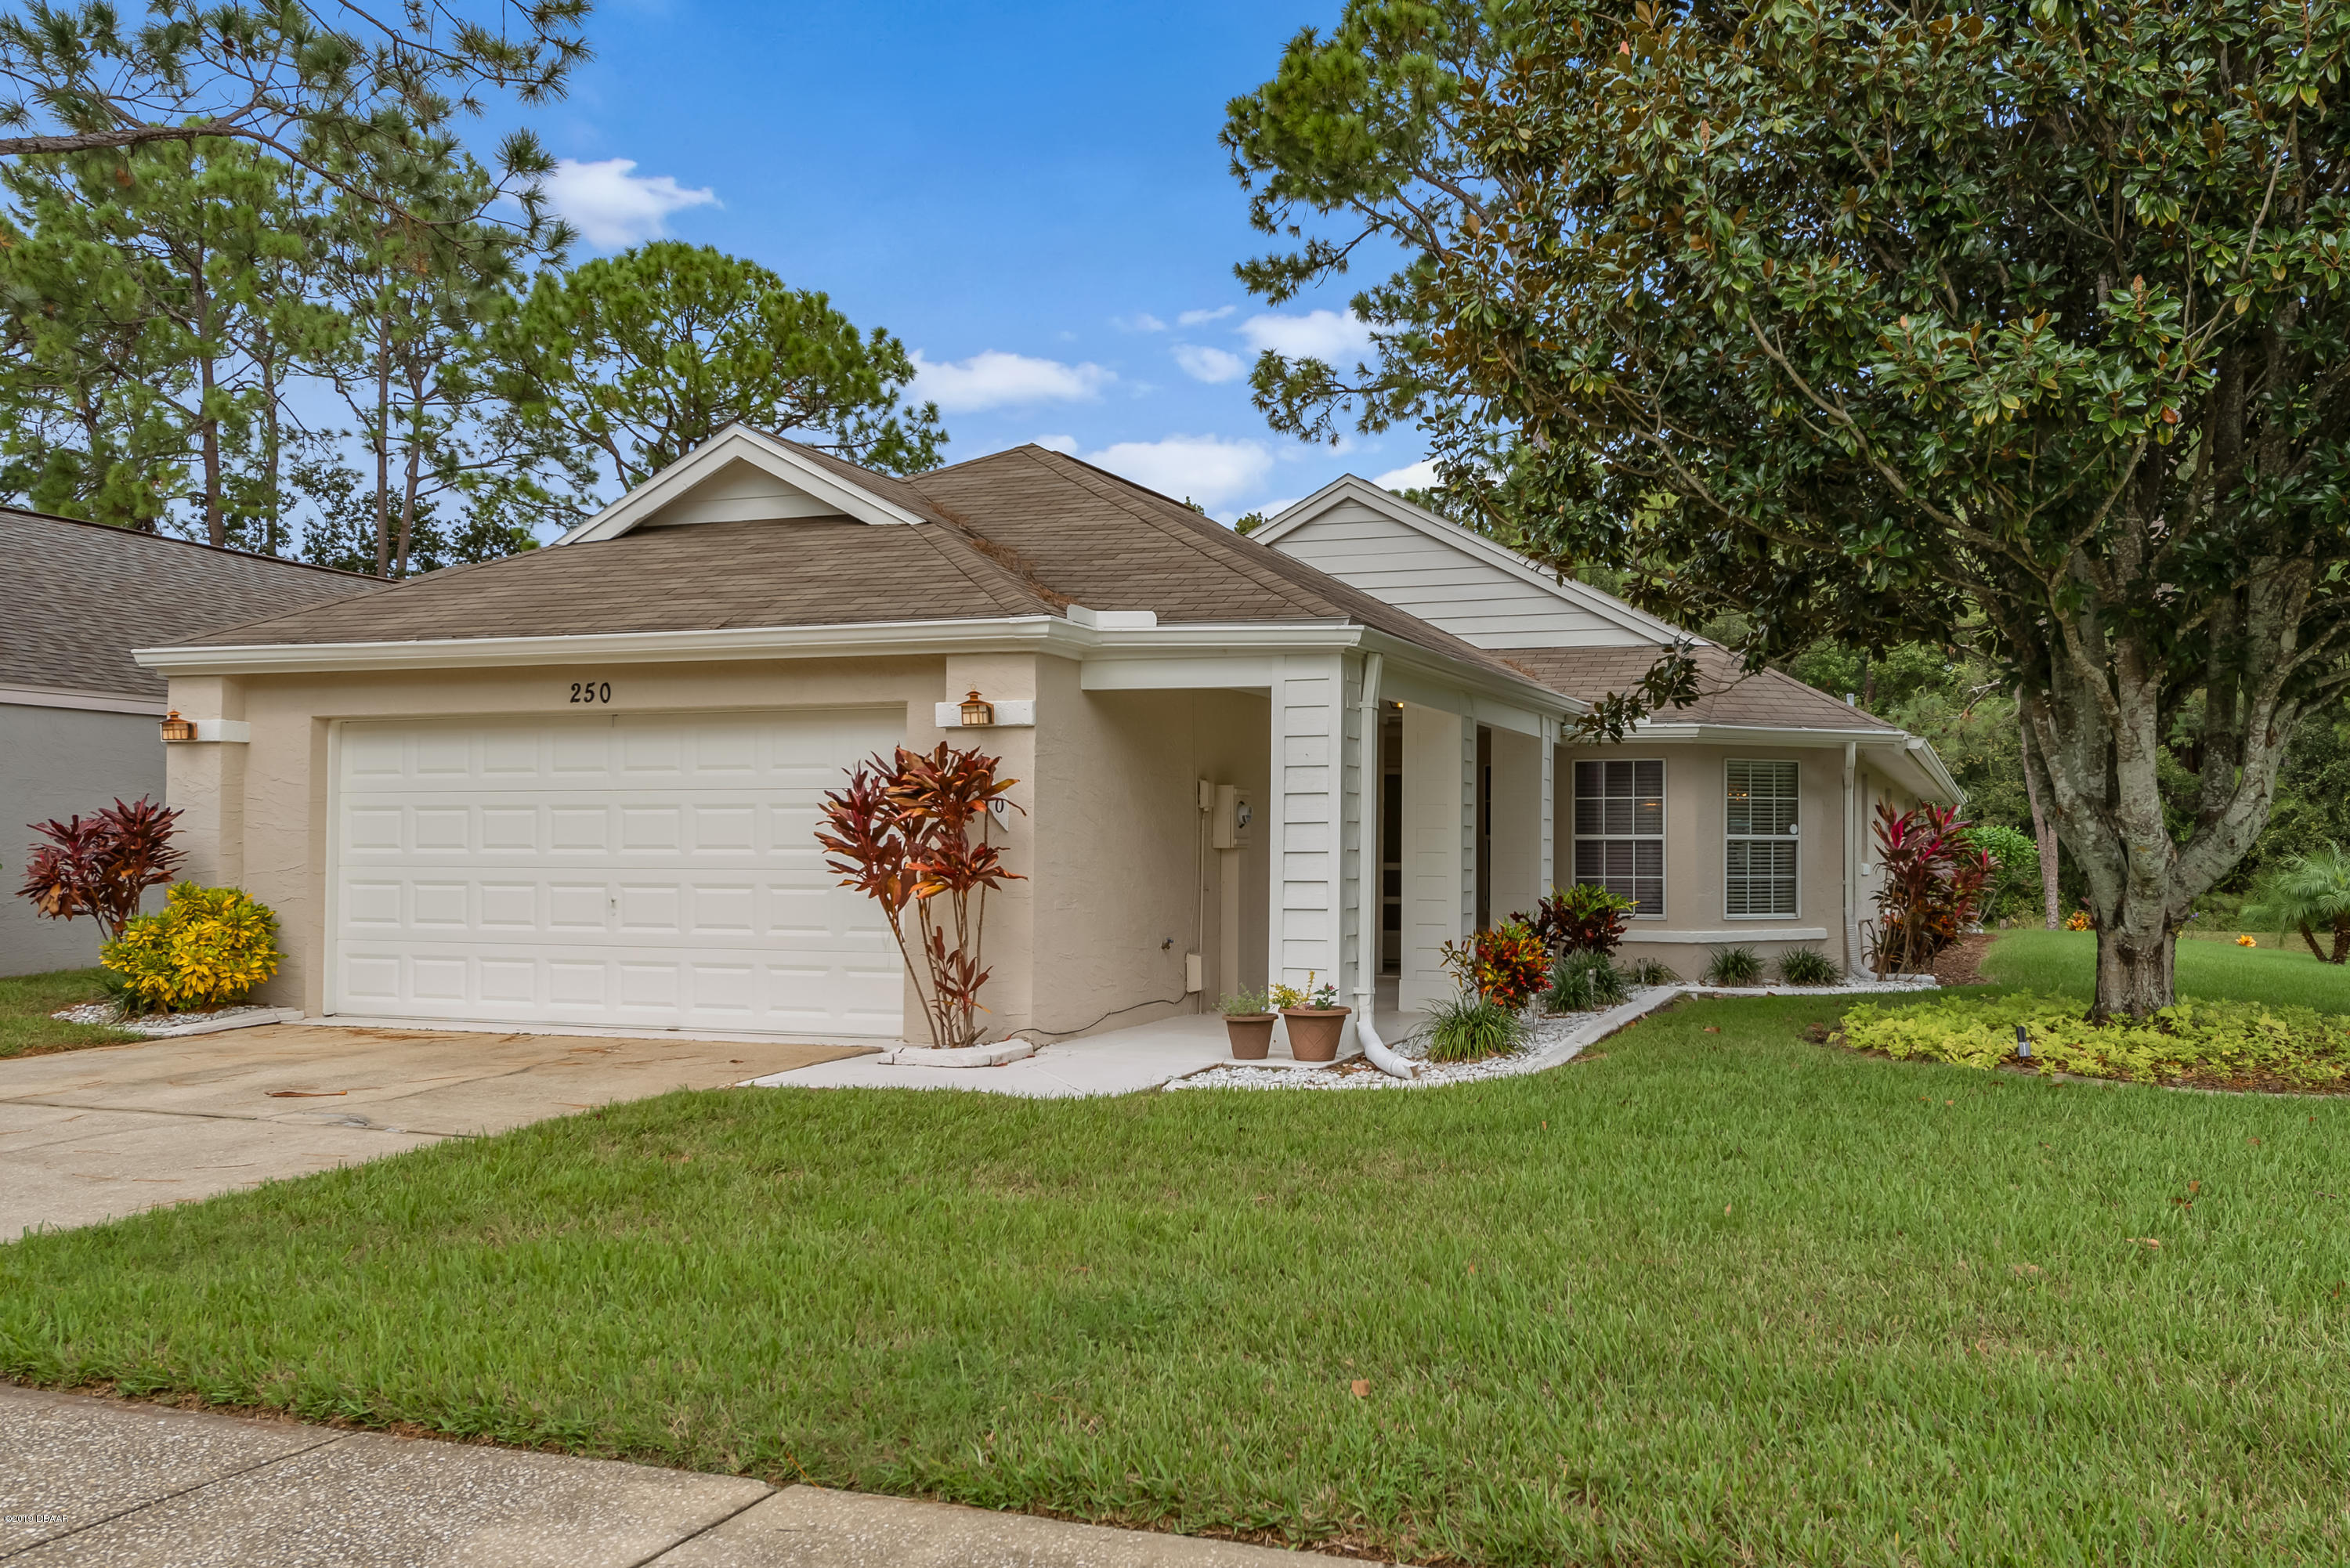 Photo of 250 Glenbriar Circle, Daytona Beach, FL 32114